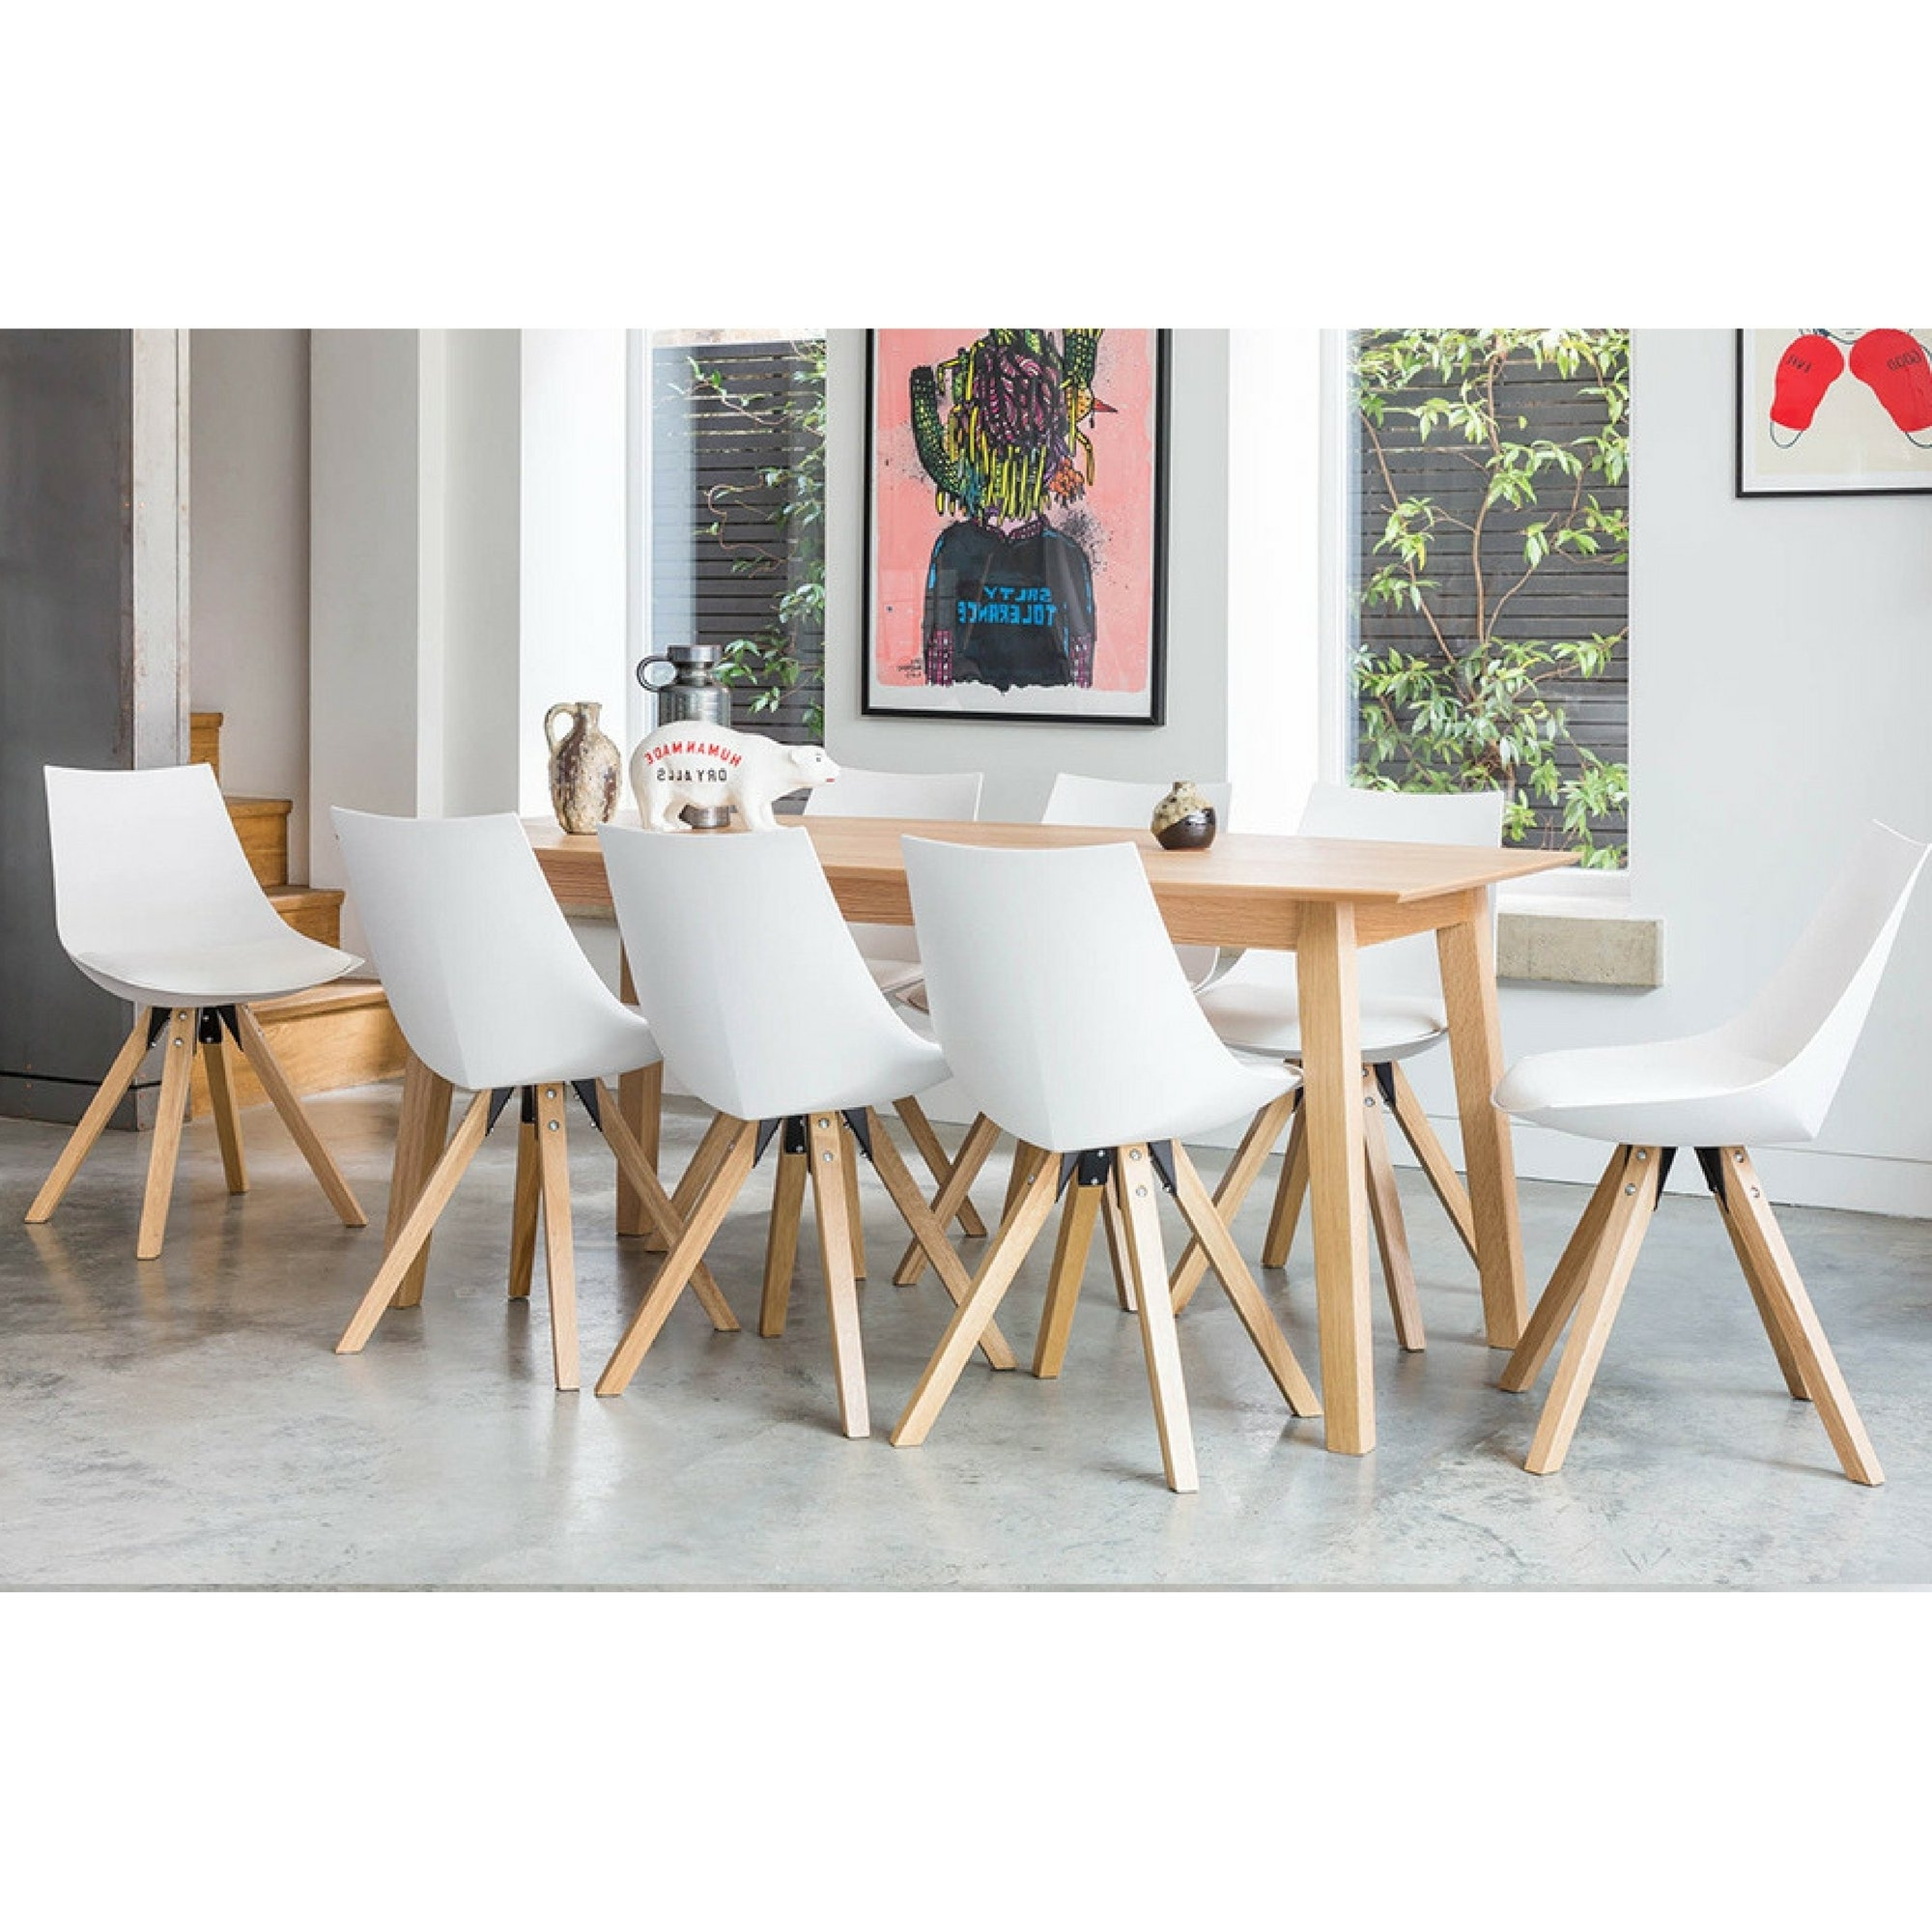 2017 Dining Tables And 8 Chairs In Norden Home Evergreen Dining Set With 8 Chairs (View 23 of 25)